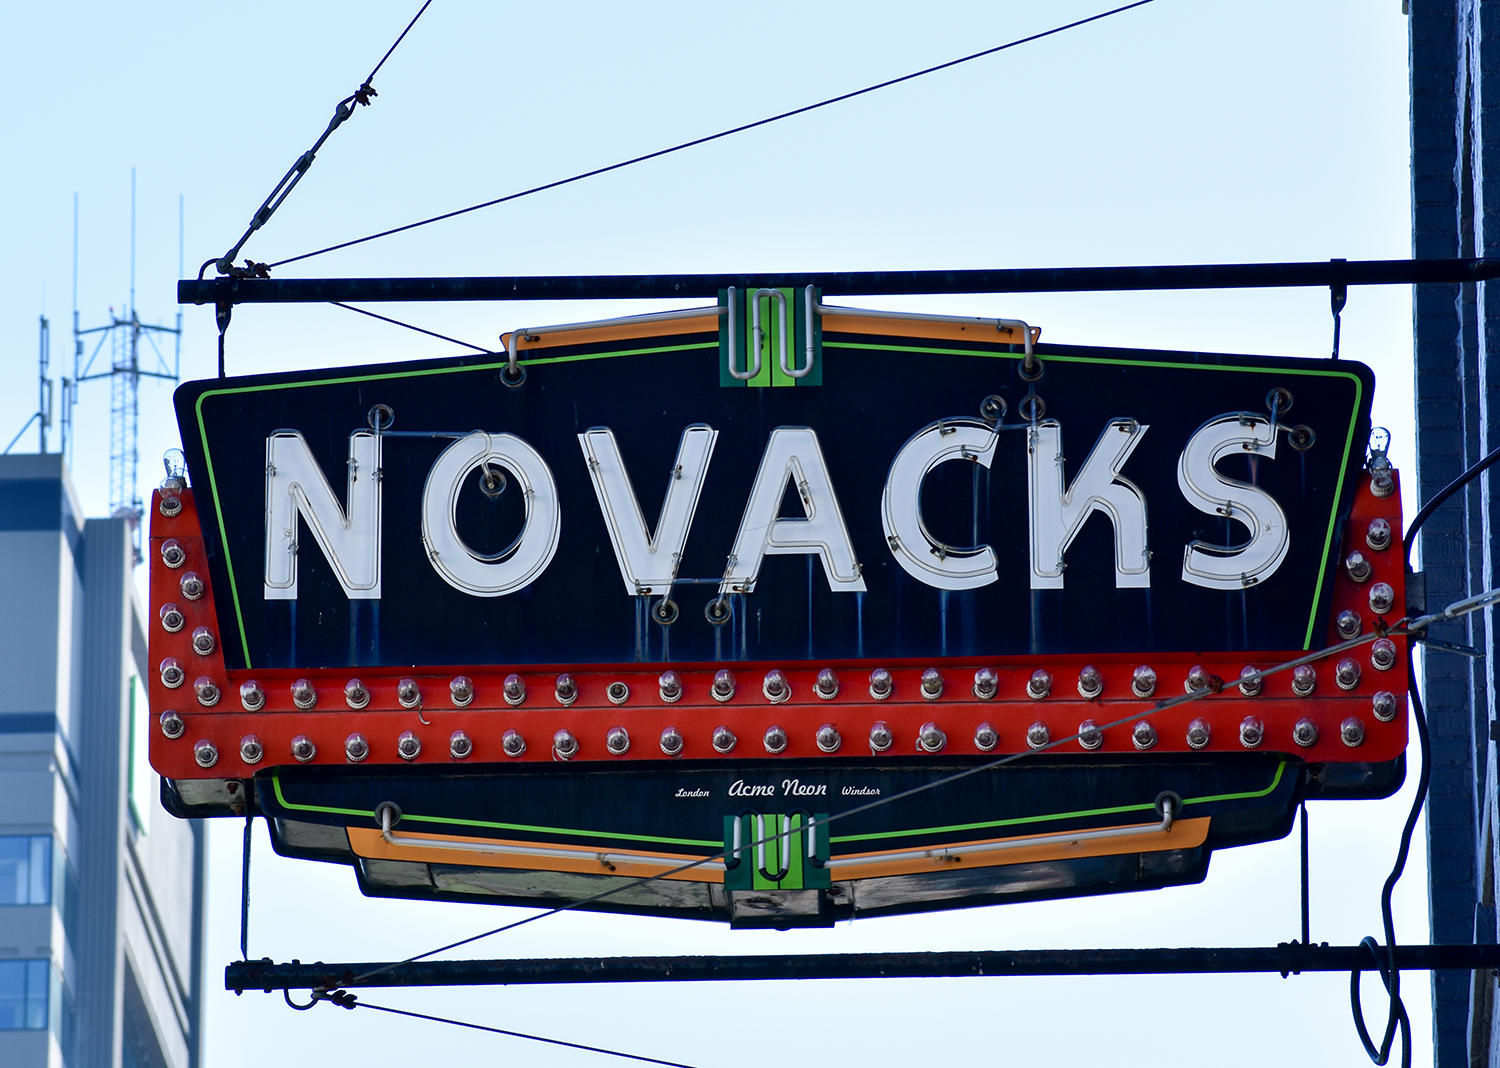 a neon sign in yellow, green, and red that says Novacks